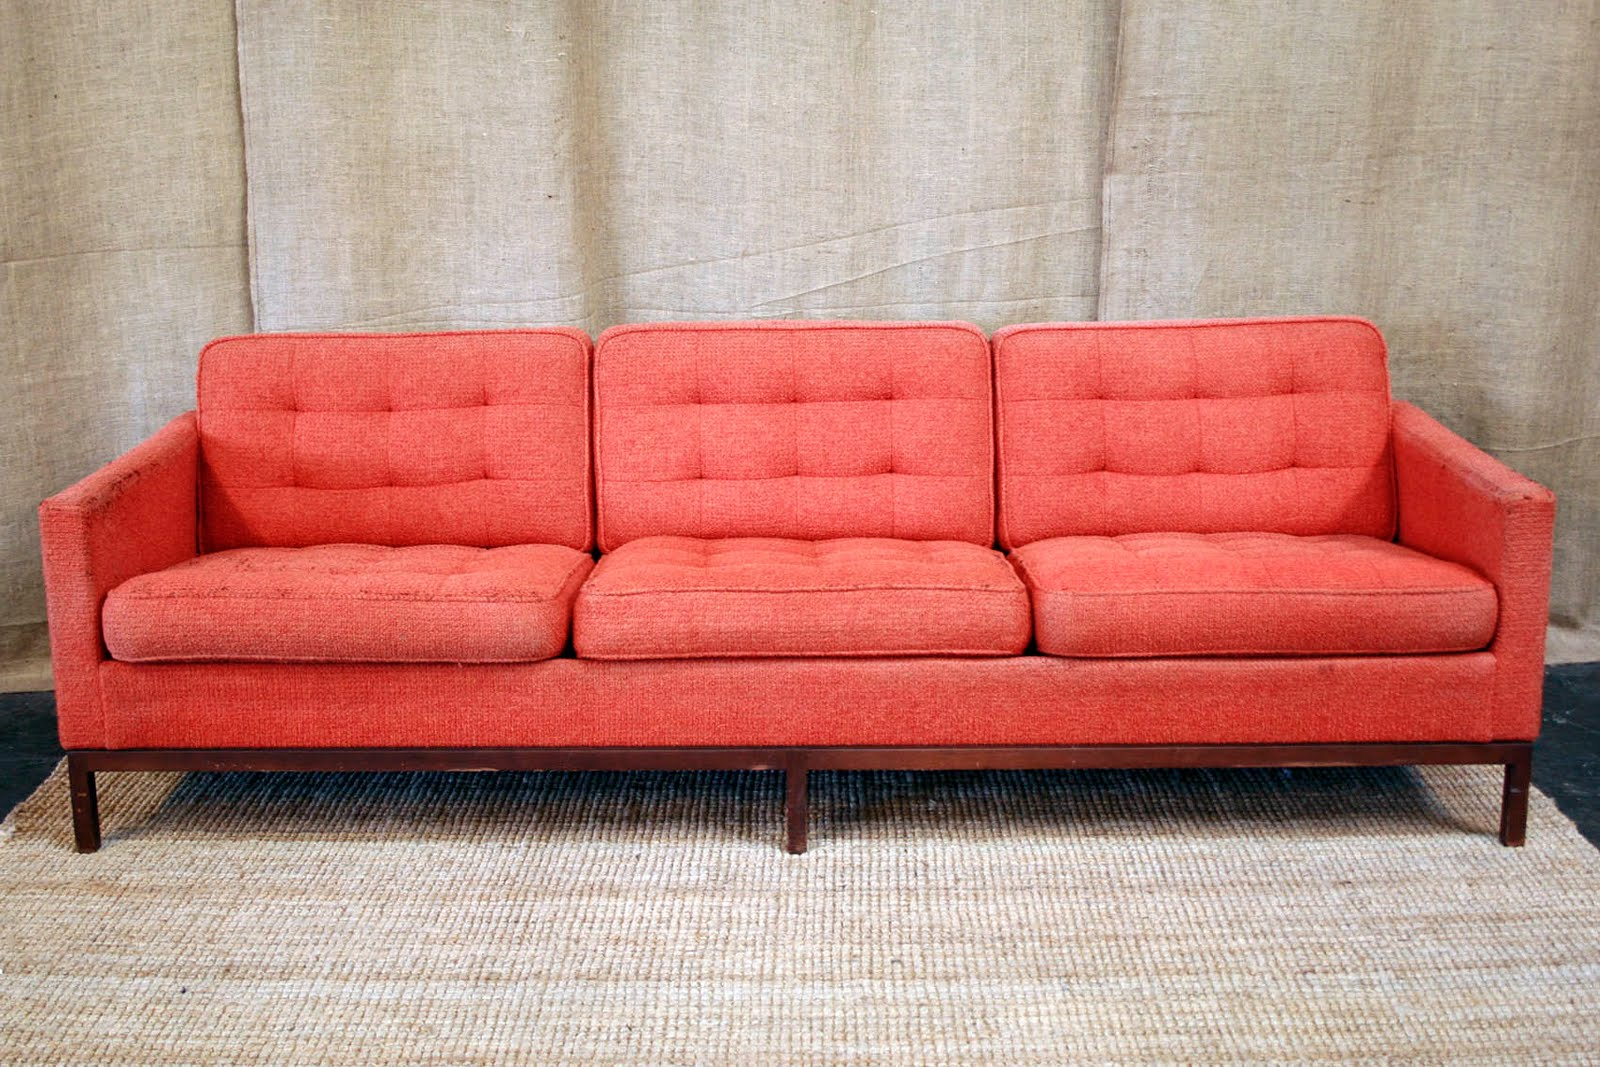 Sofa 50er fabulous acapulco bench de with sofa 50er for Sofa 50er stil